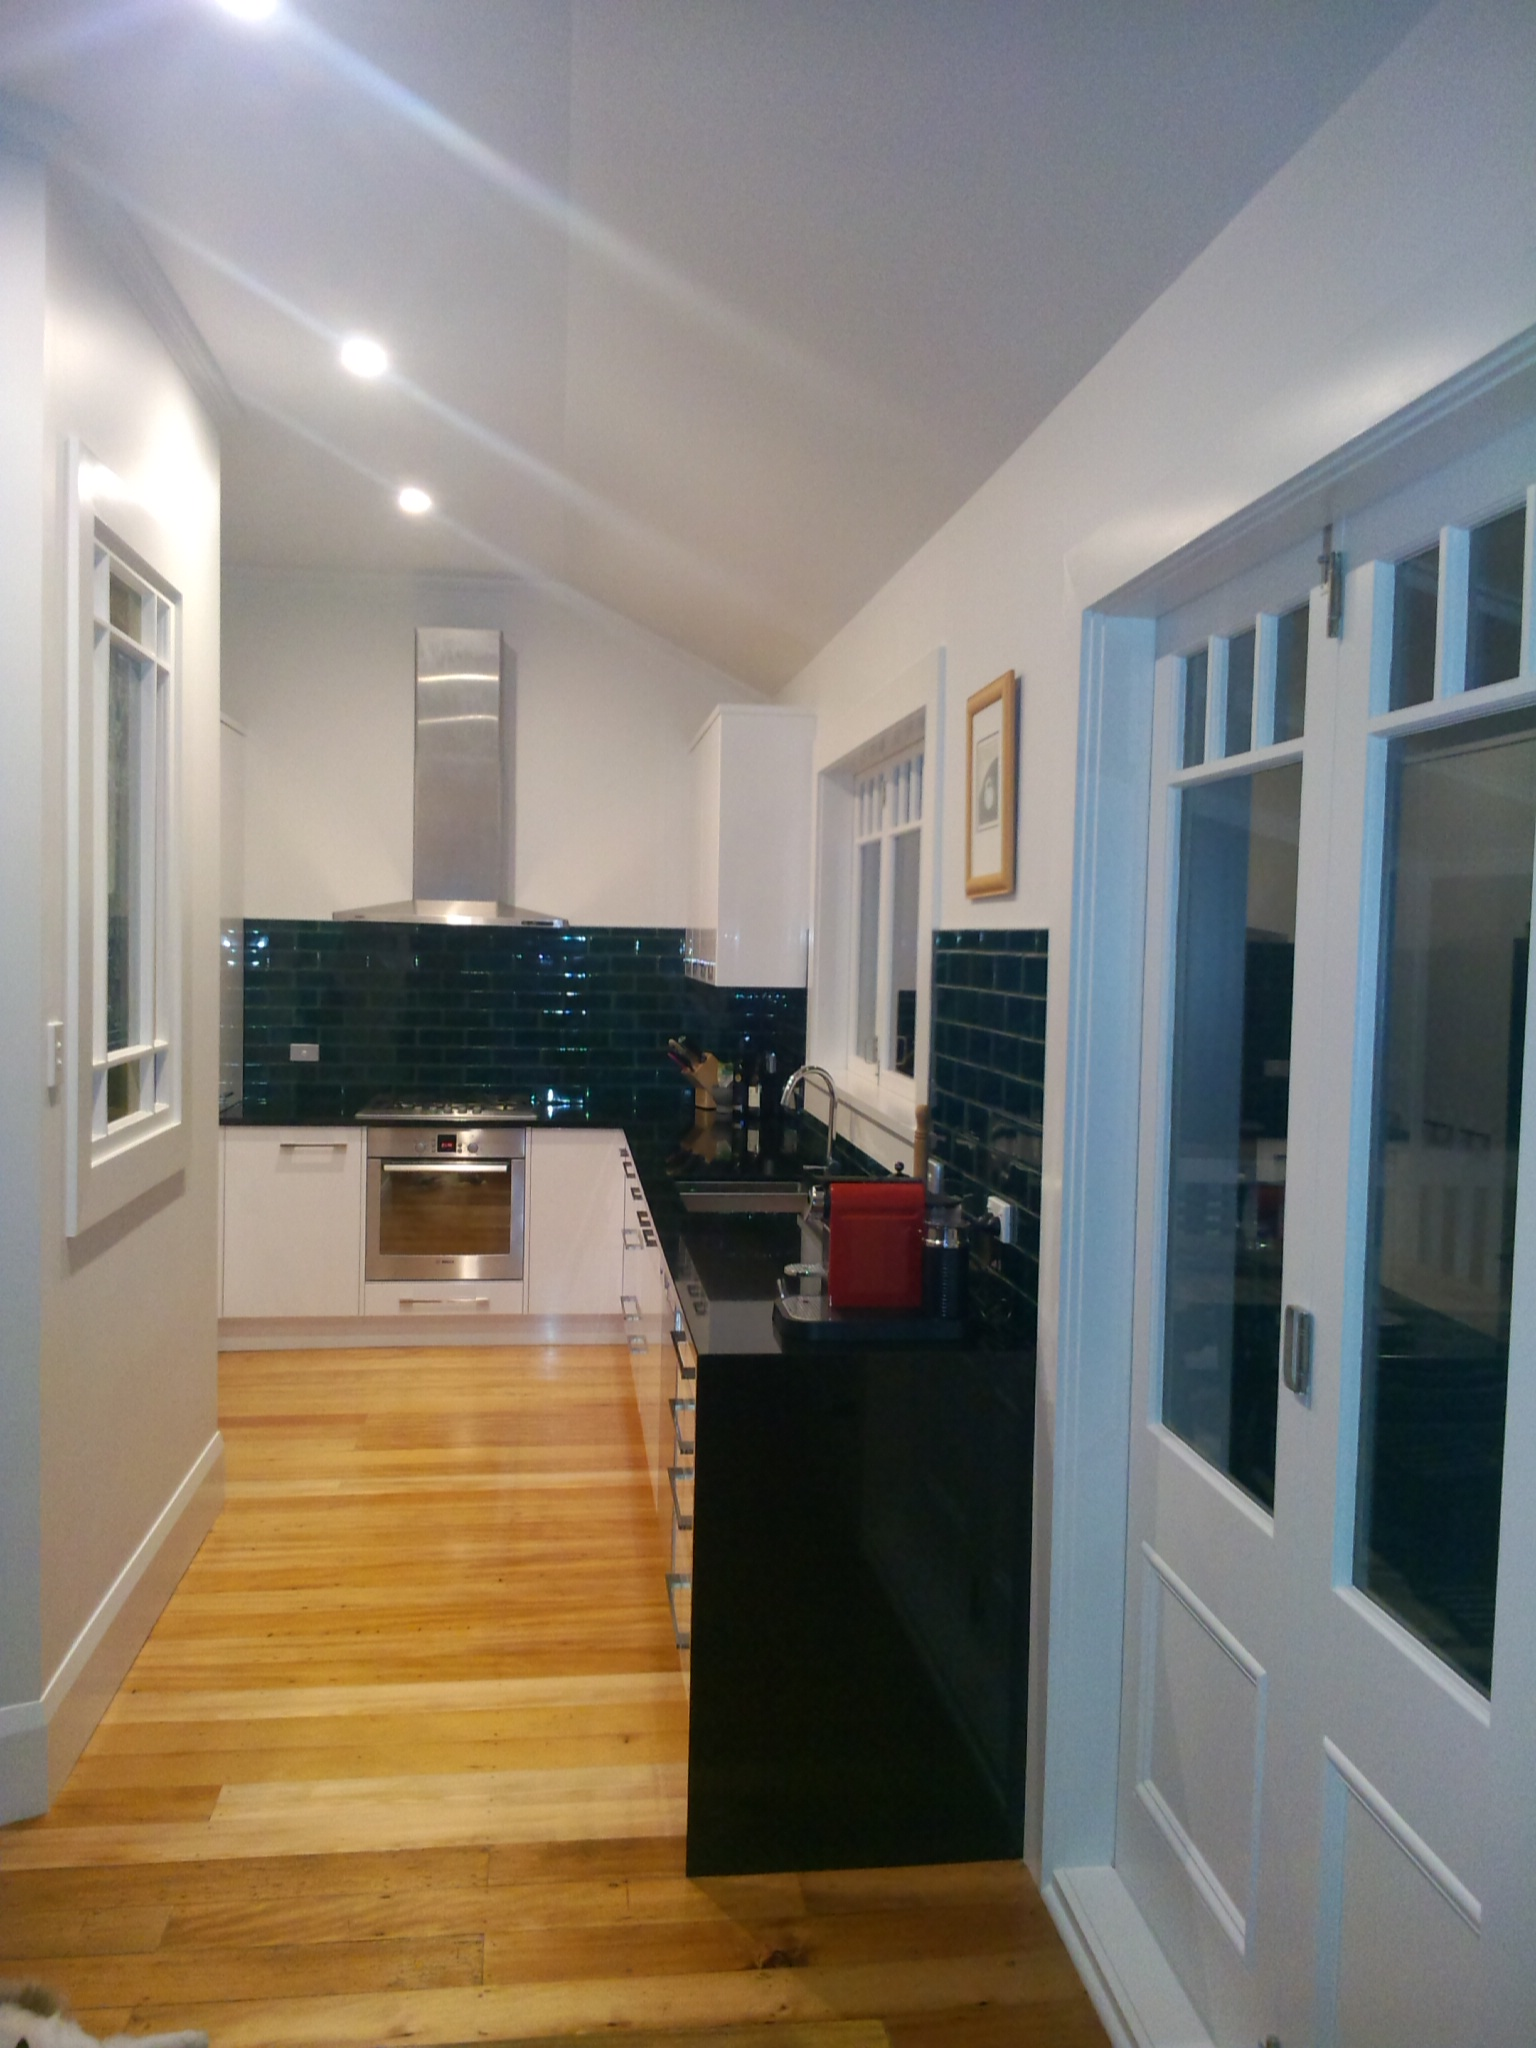 Bathrooms & Kitchens renovation in Calliope Rd Devonport